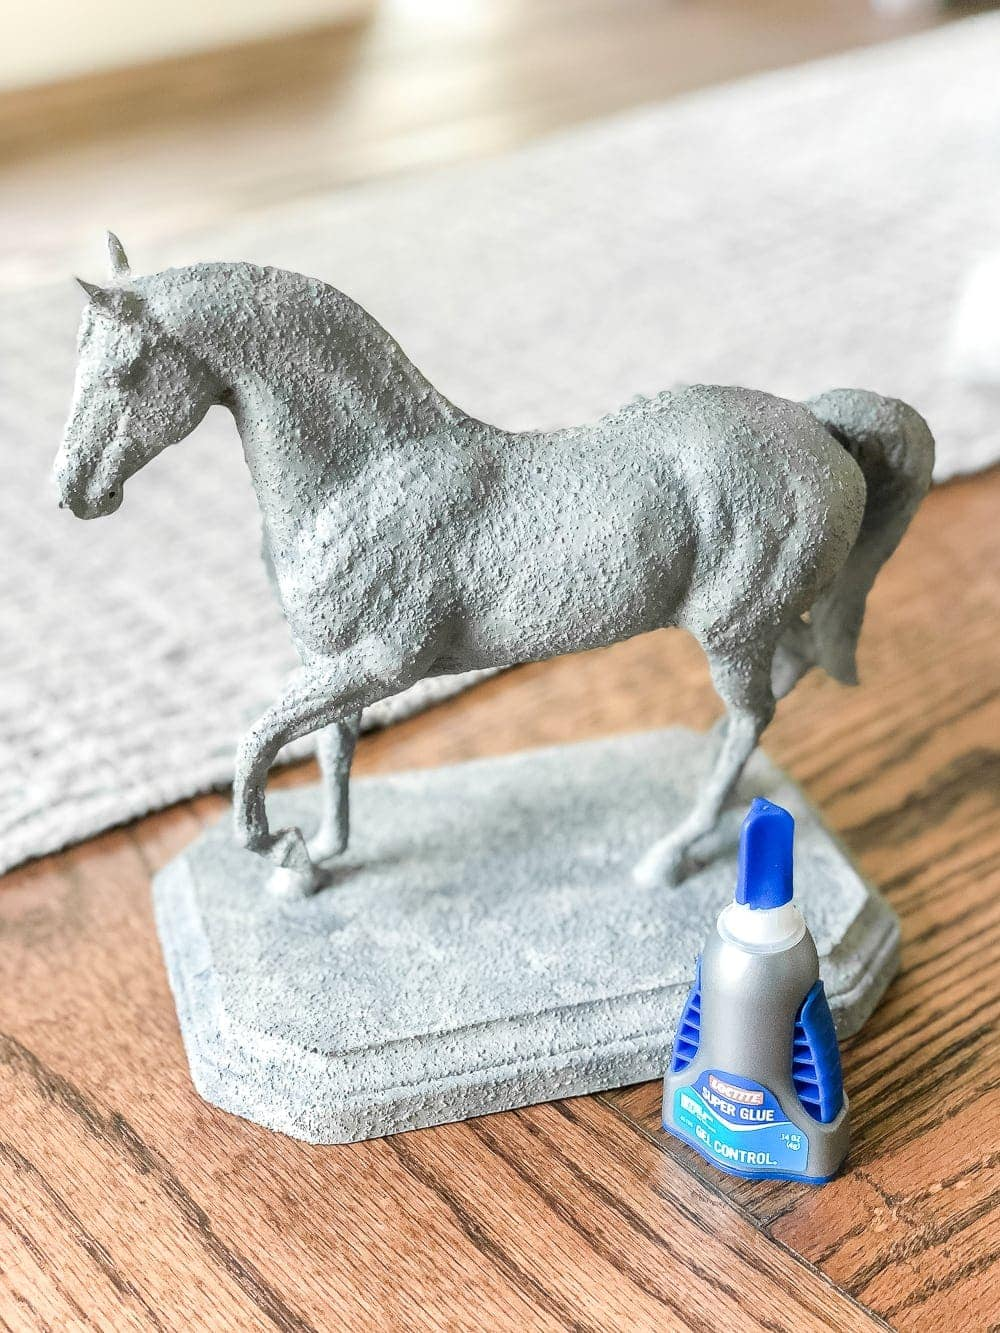 How to turn a toy horse figurine into a designer-inspired concrete equestrian statuette using just paint, wood craft, and glue. #thriftymakeover